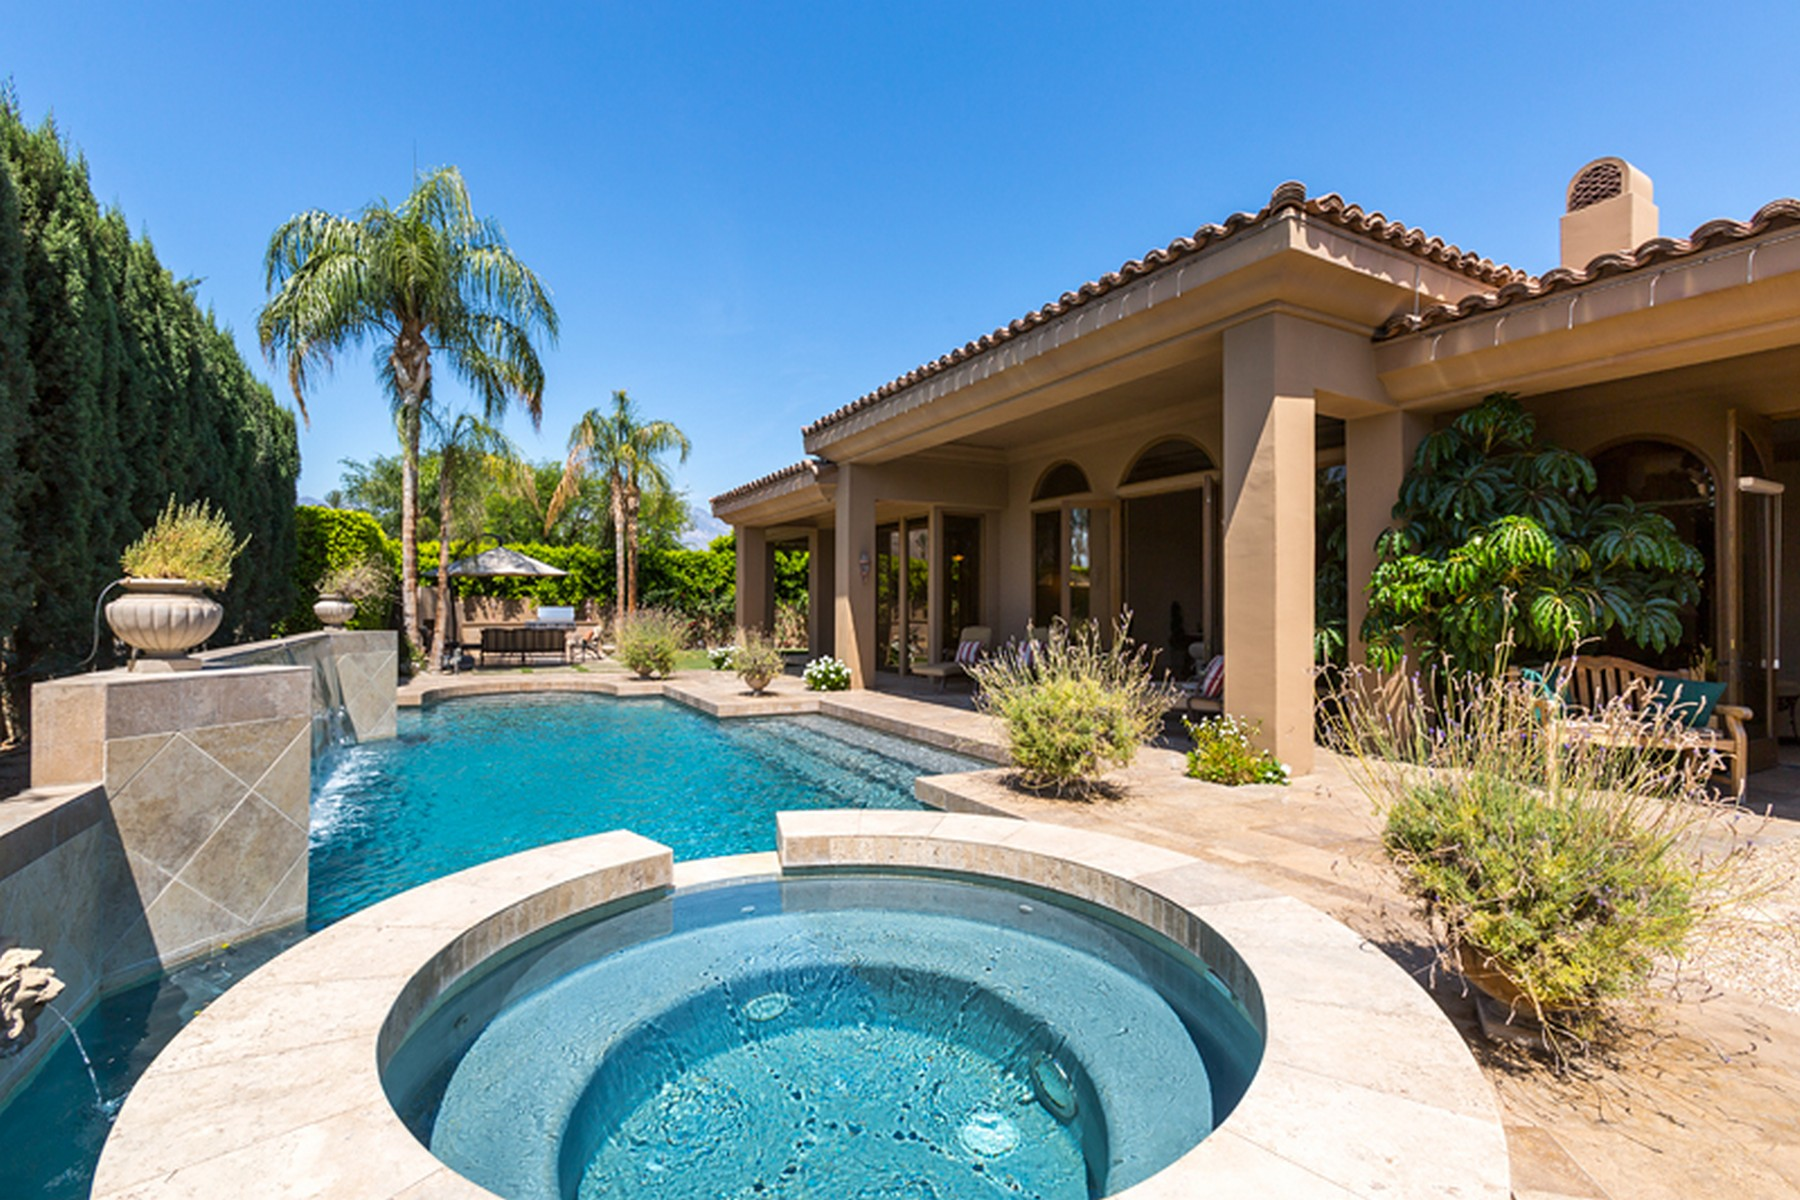 Villa per Vendita alle ore 149 Waterford Circle Rancho Mirage, California 92270 Stati Uniti